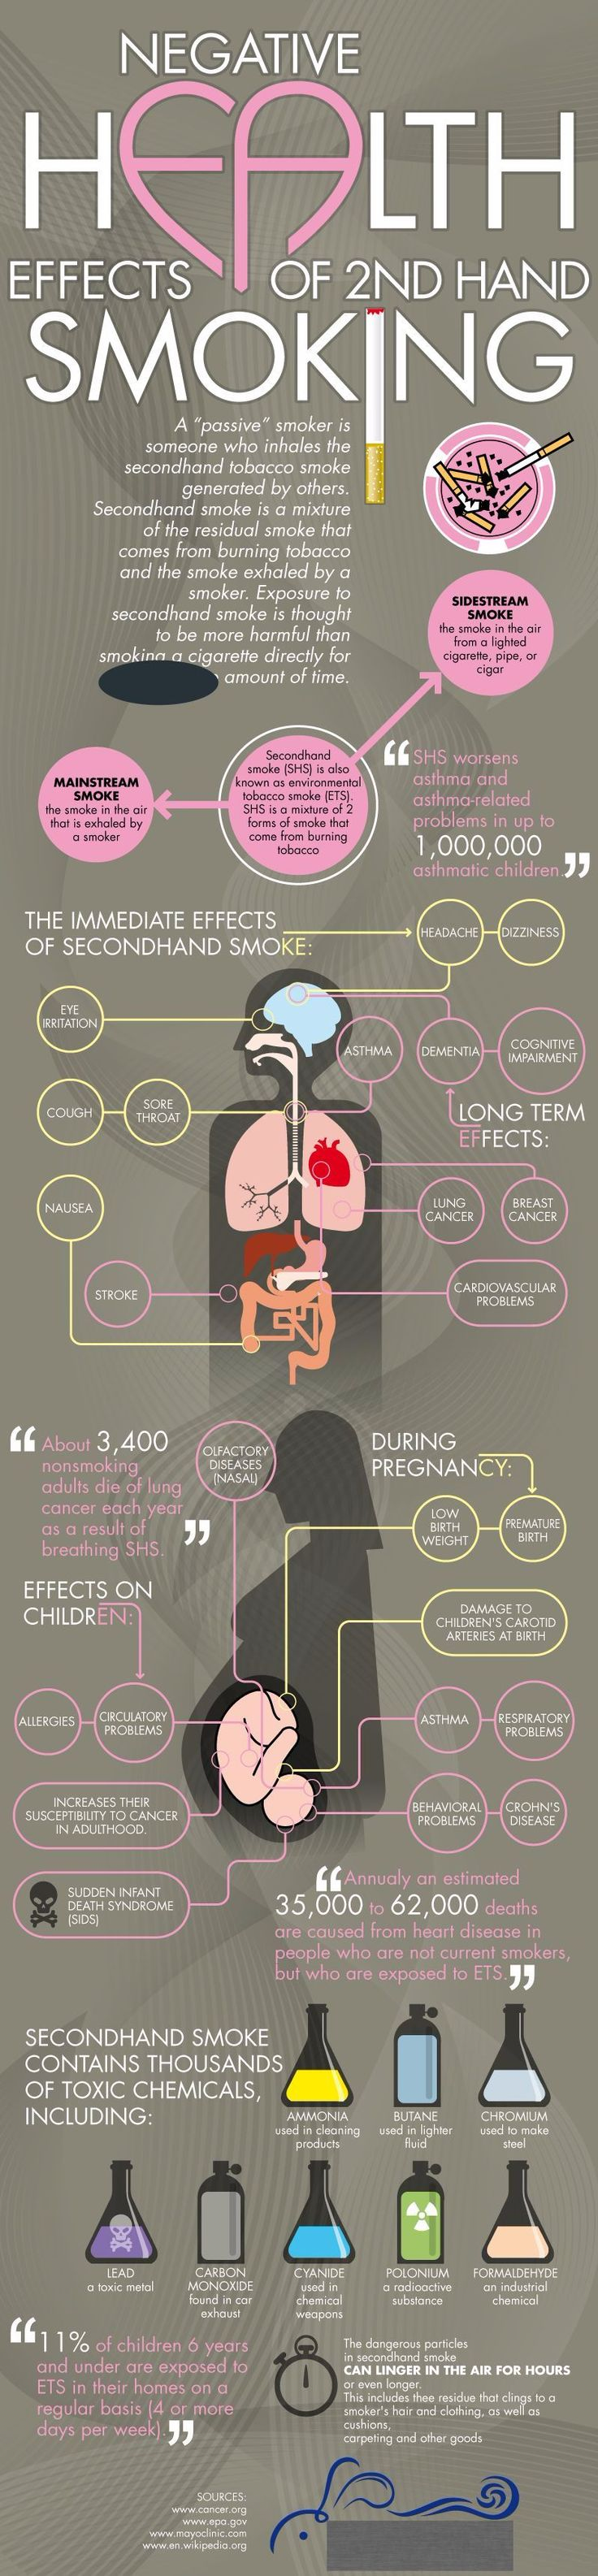 1. second hand smoke is more dangerous than smoking normally 2. side stream smoke is the smoke in the air from a ciggarette